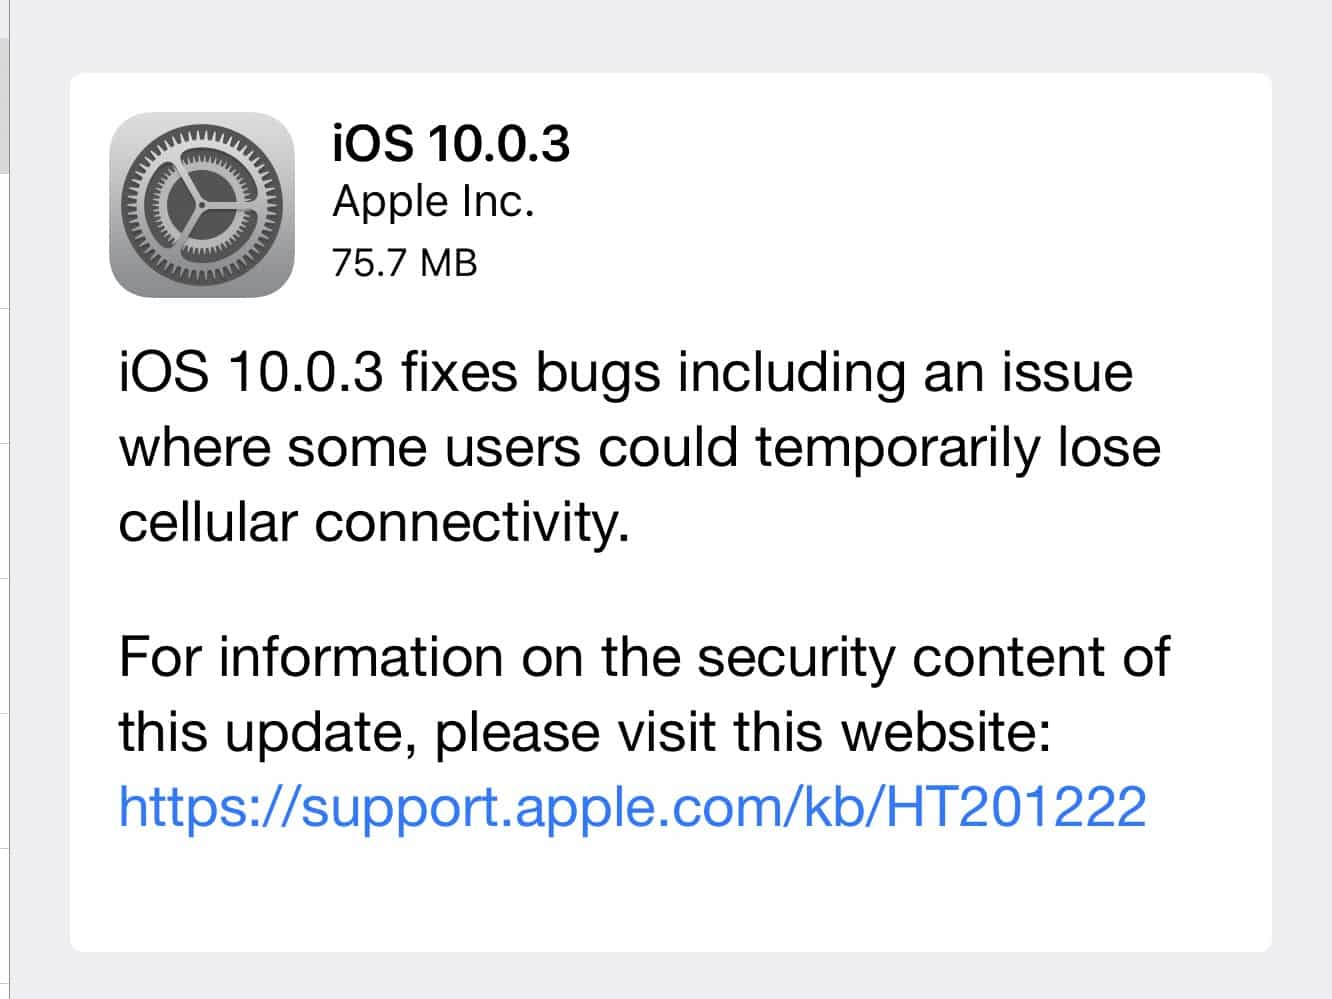 Apple releases iOS 10.0.3 to fix cellular connectivity bug in iPhone 7/7 Plus